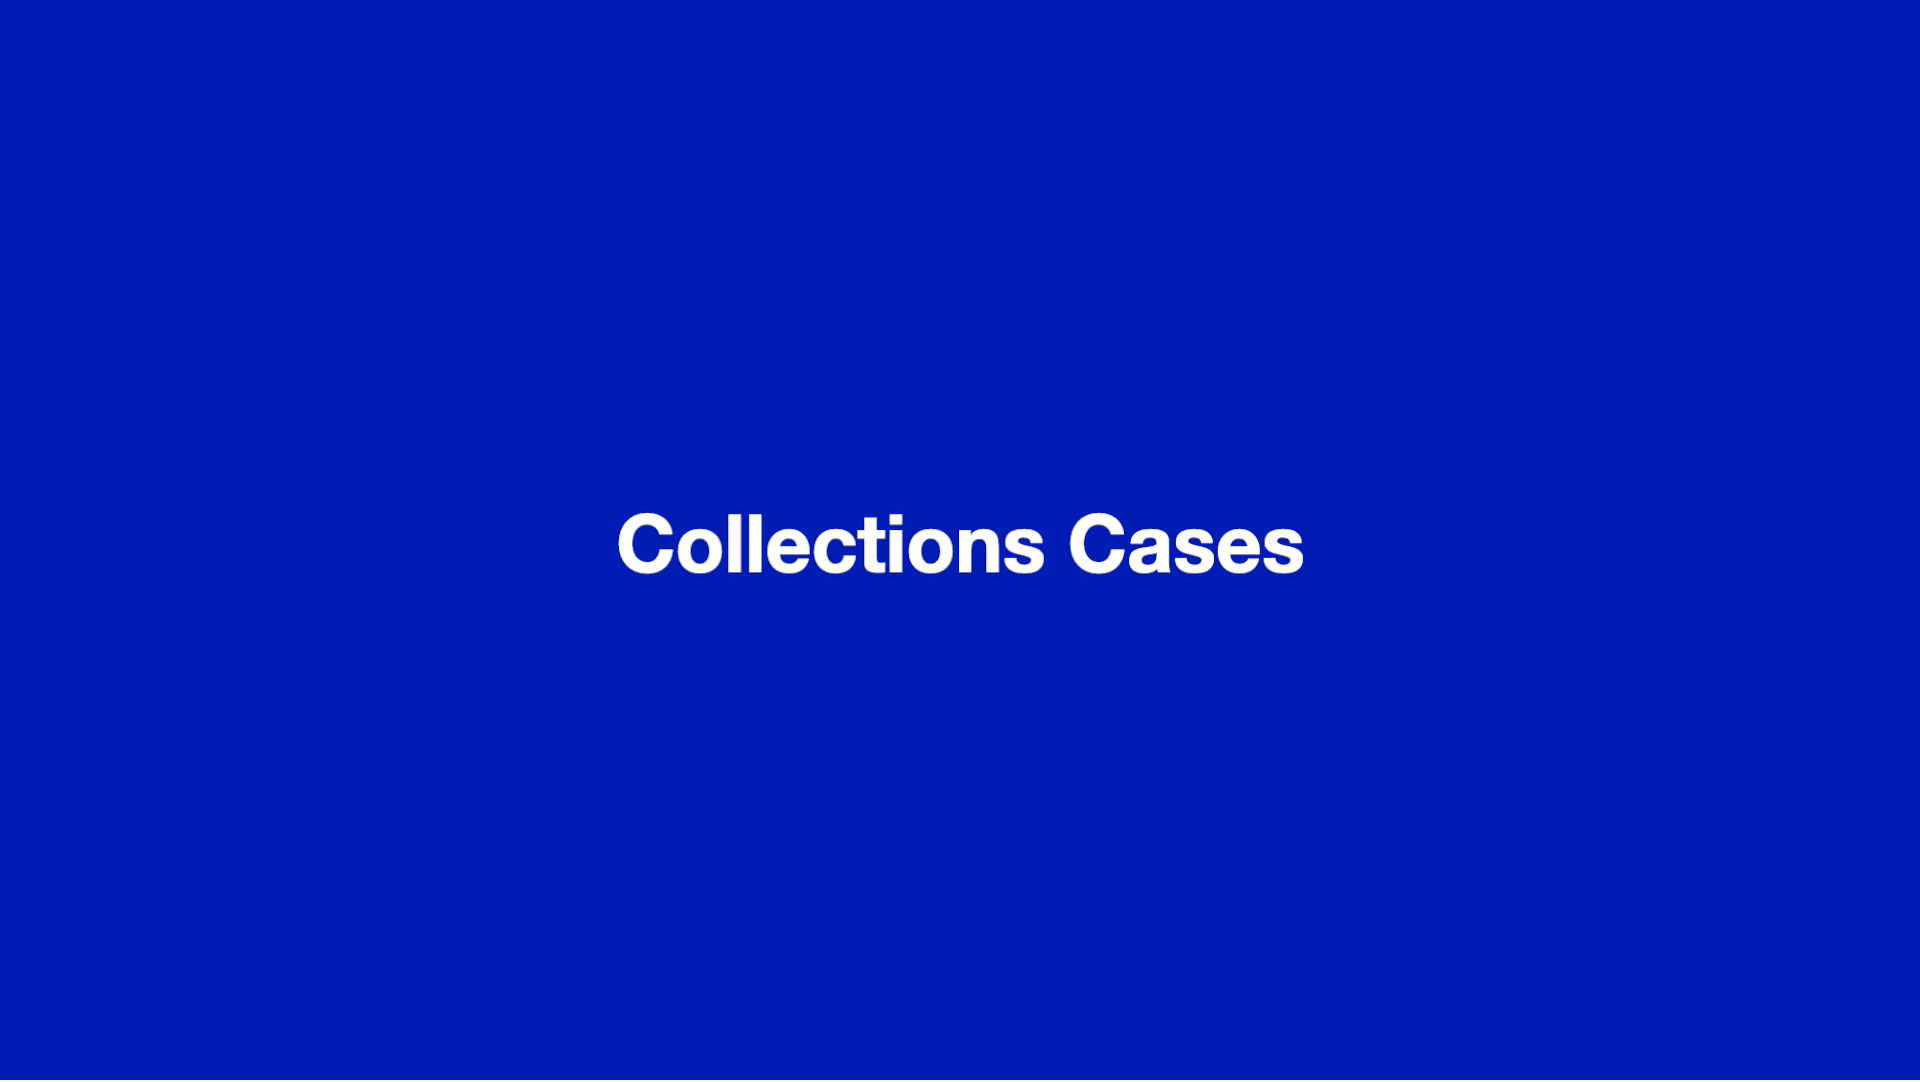 Collections Cases